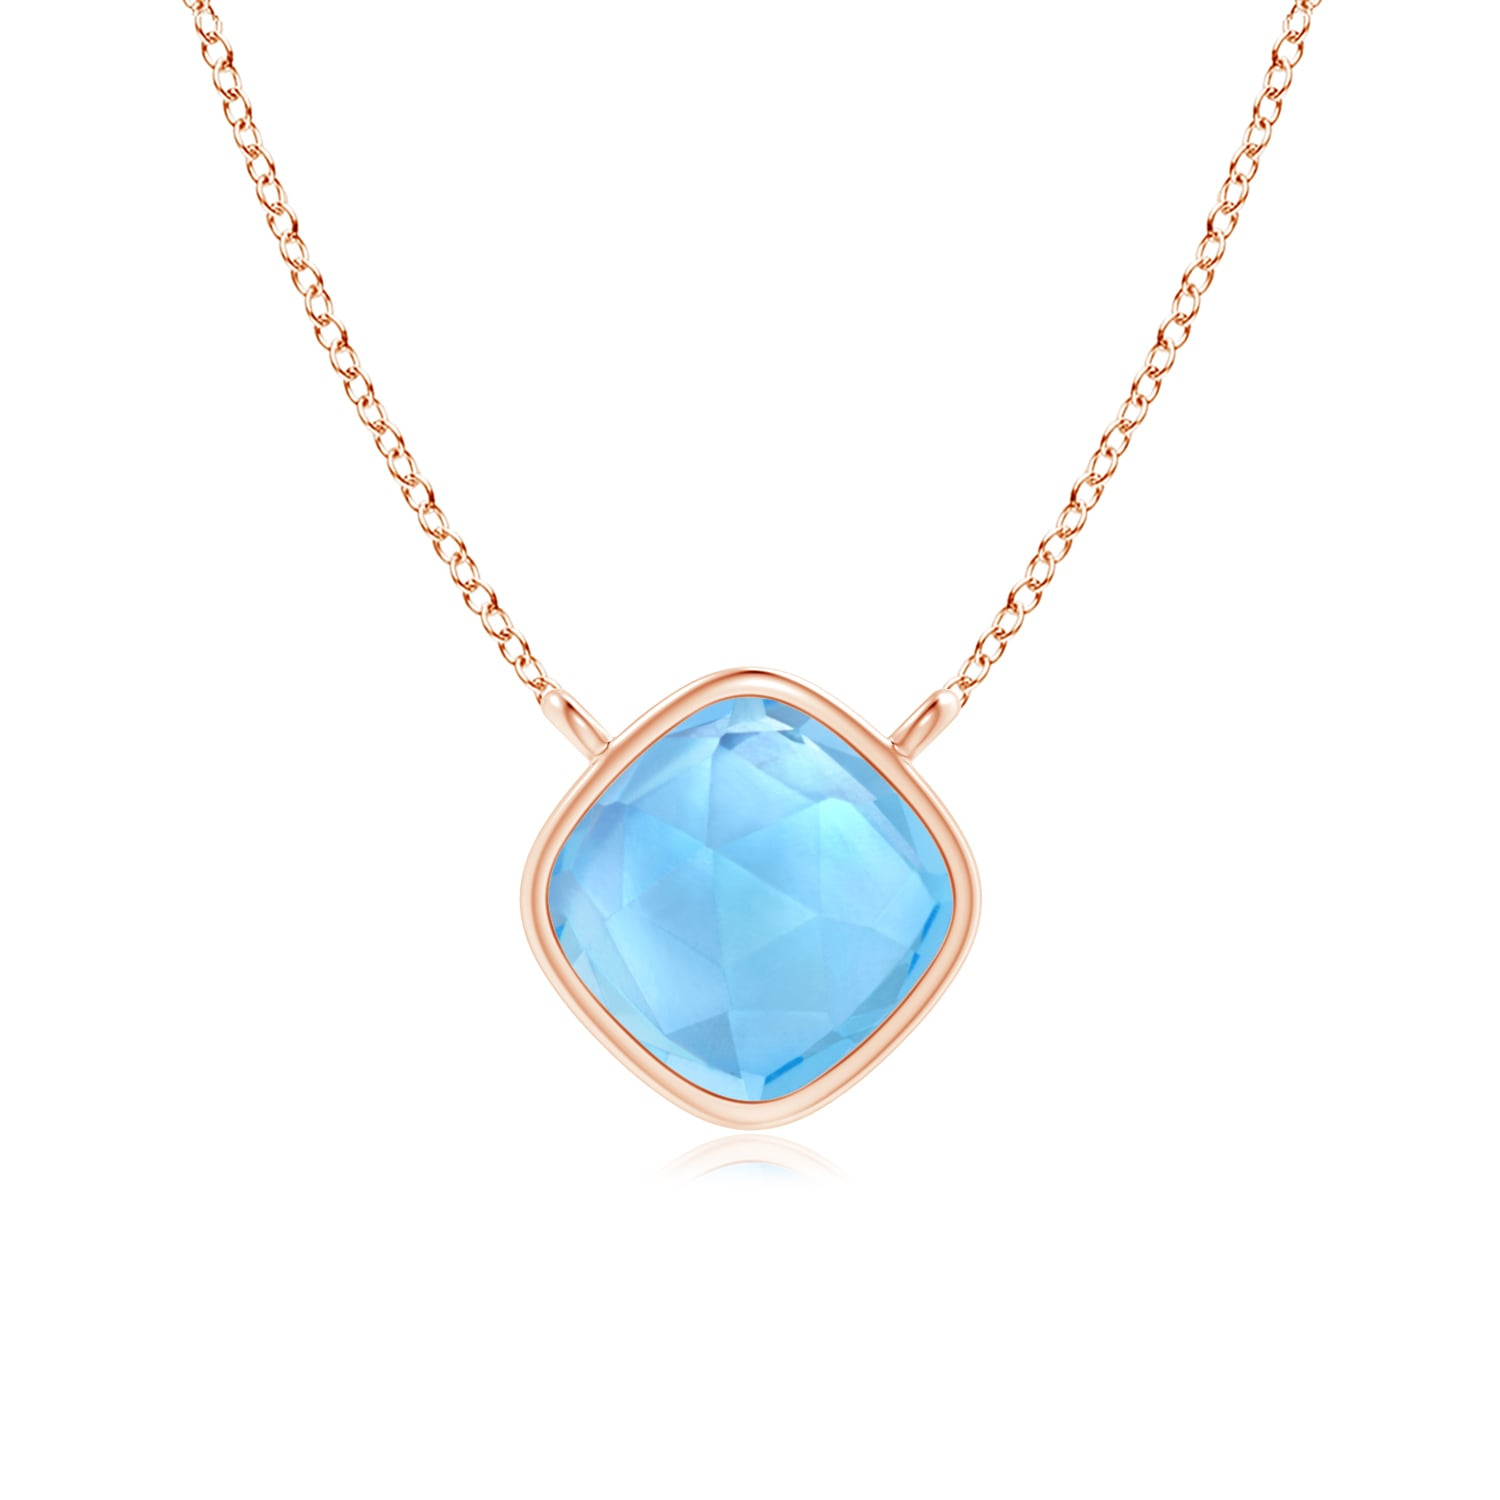 jewellery false zoom fao astley the scale necklace clarke topaz crop subsampling london upscale shop editor blue product